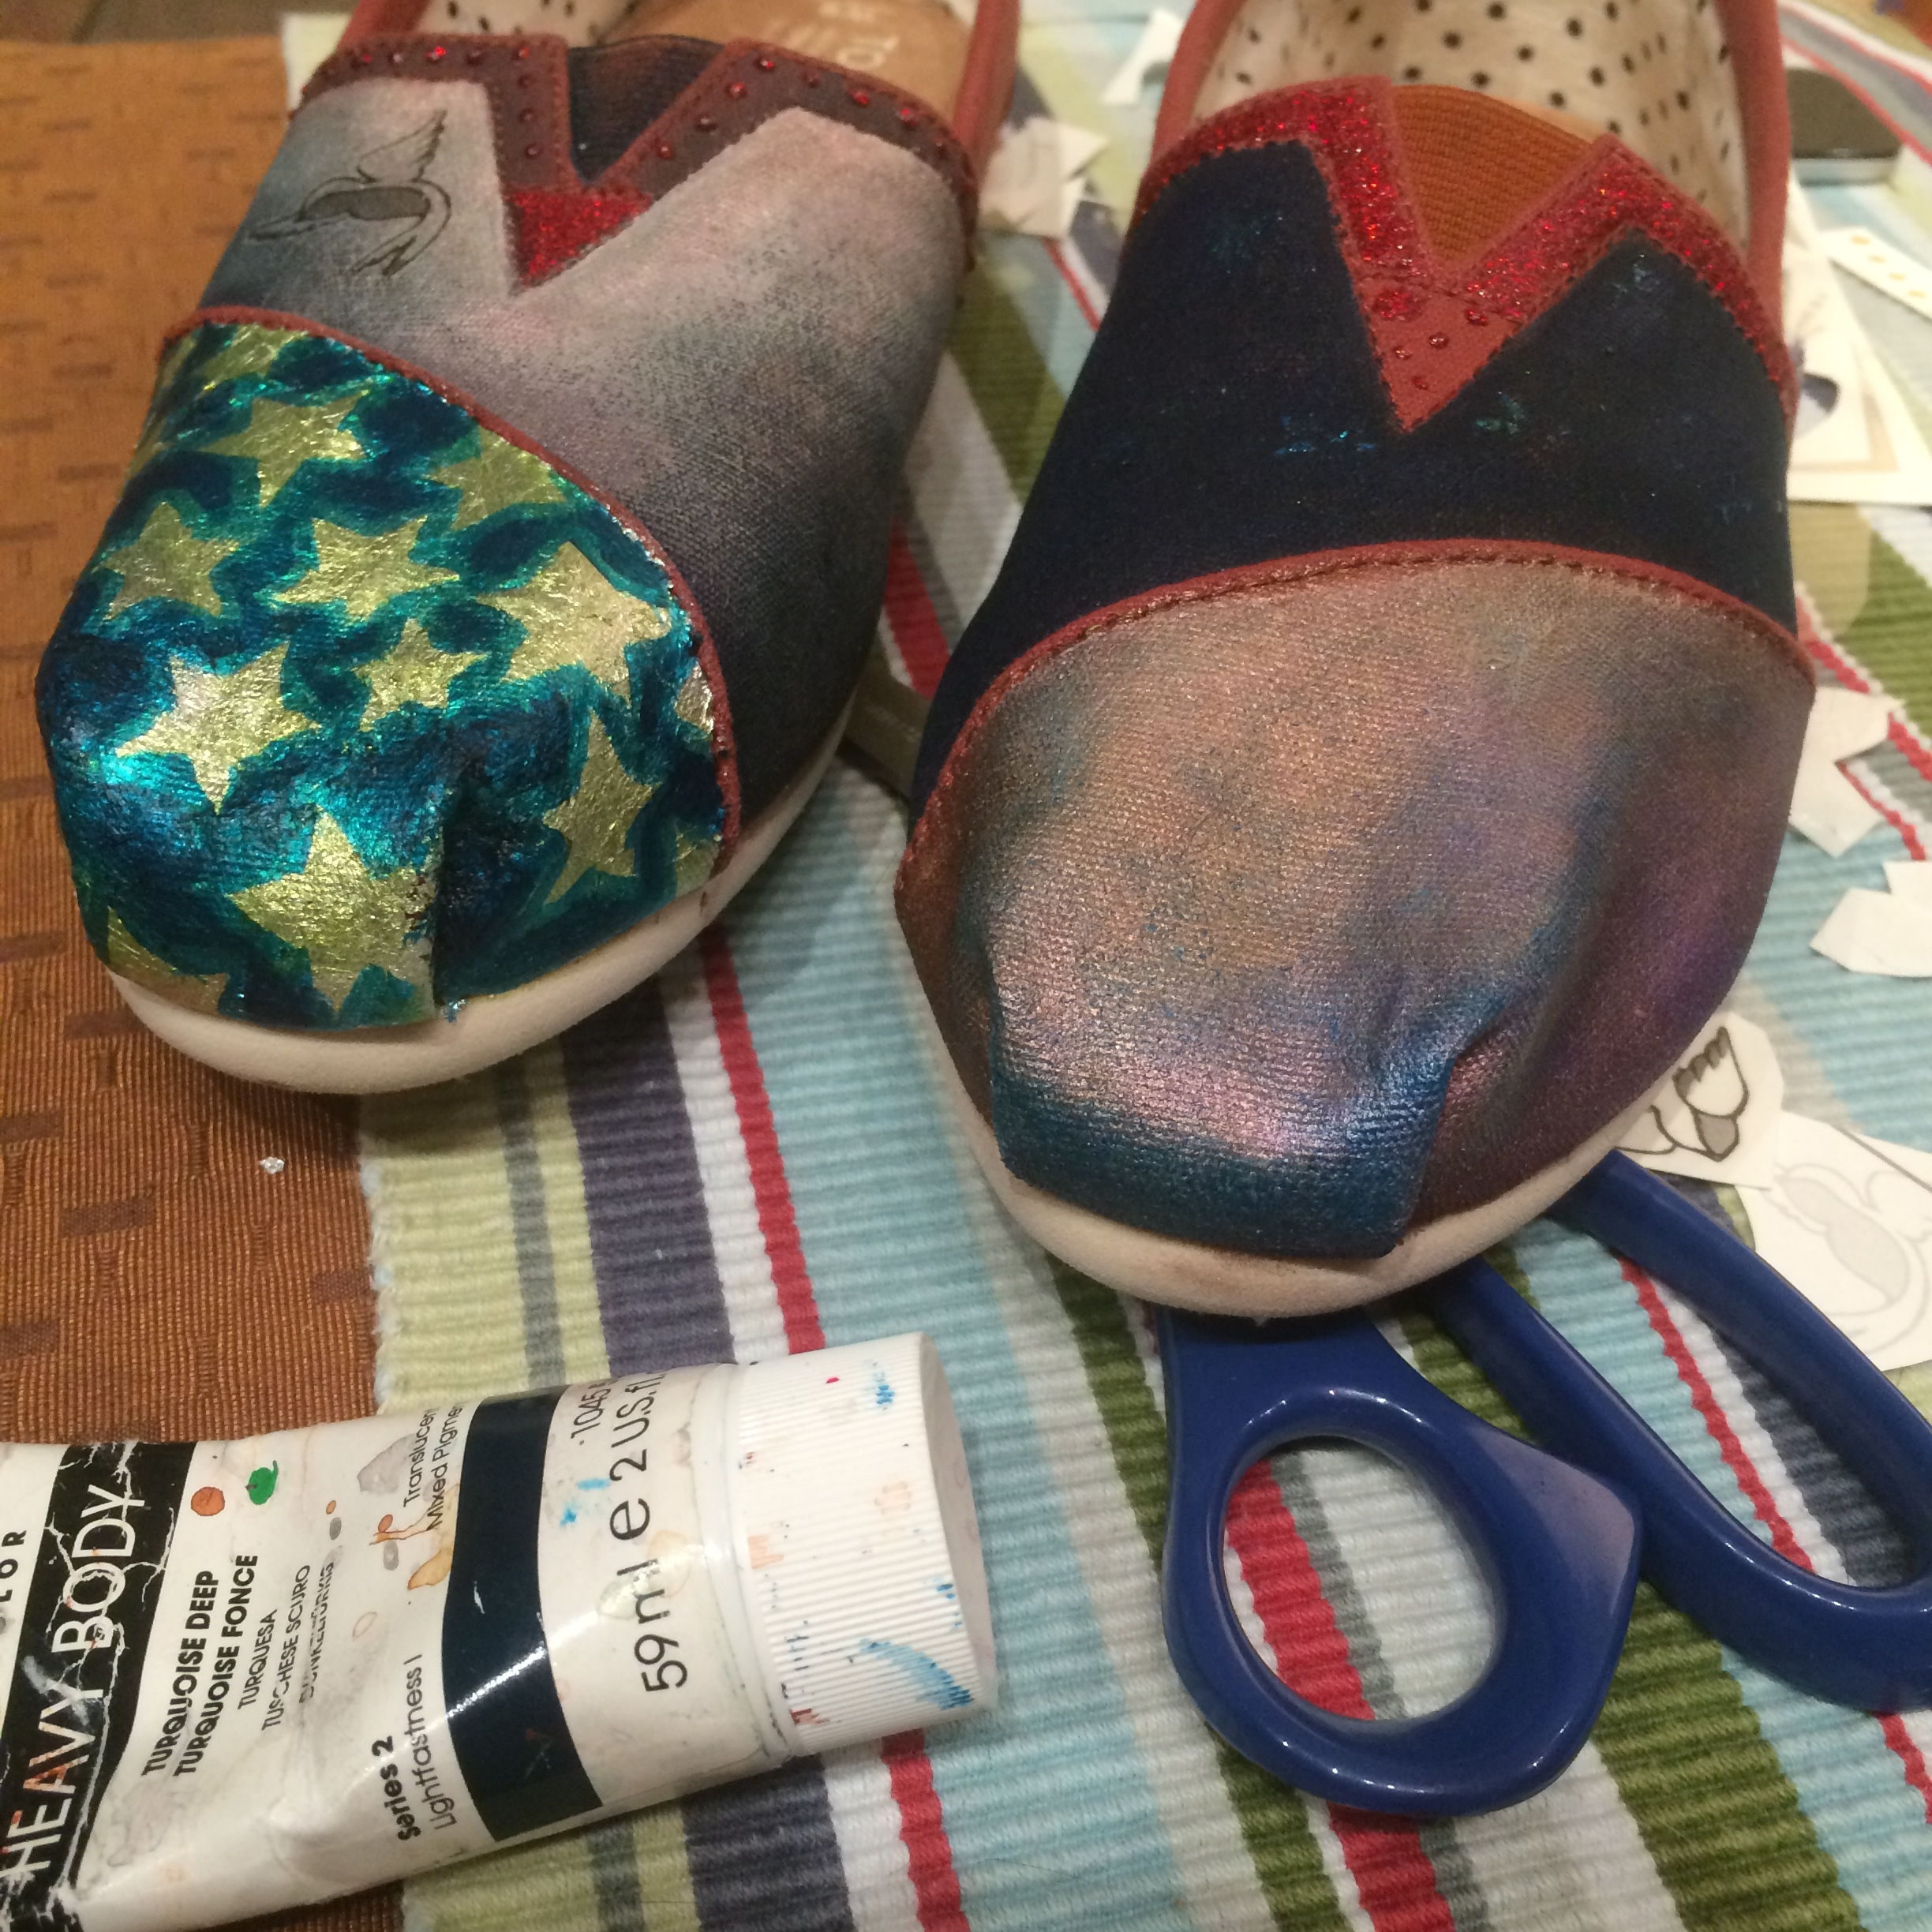 The eyeshadow is sealed with a gel medium and some glazes of paint are added. I also add a temporary tattoo of a bird to the other shoe and seal it.